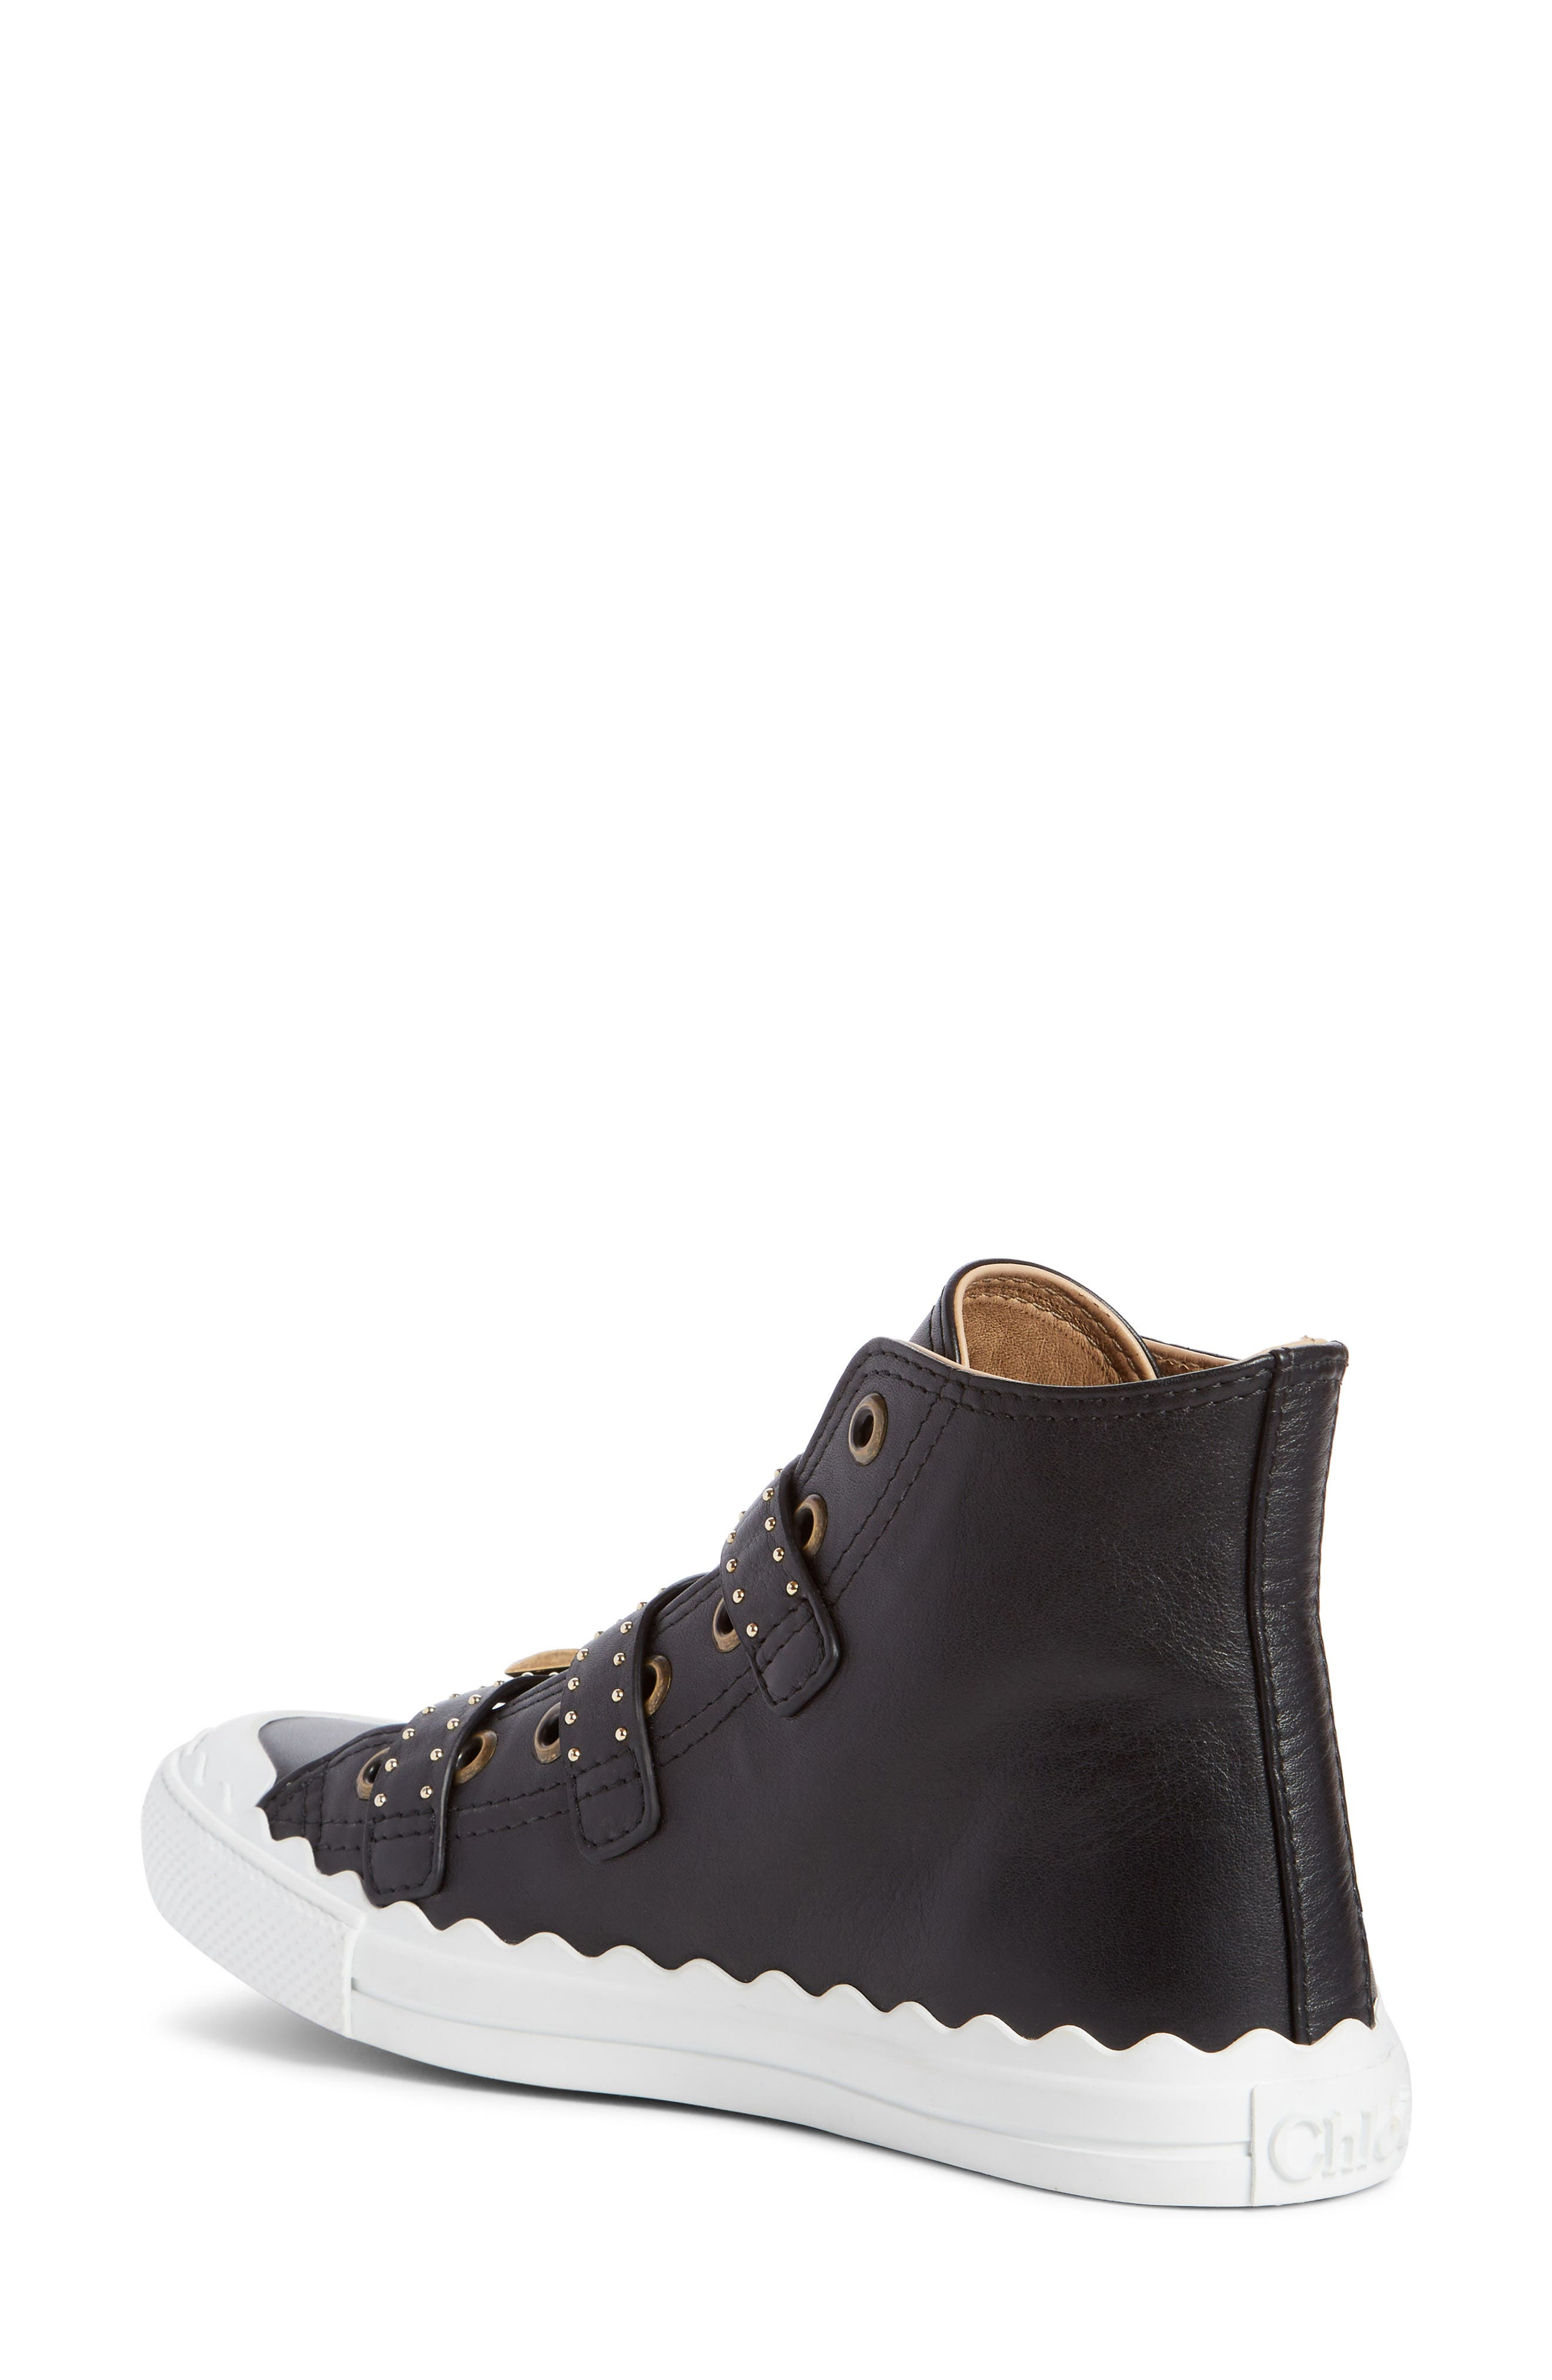 Kyle Stud Buckle High Top Sneaker,                             Alternate thumbnail 2, color,                             001